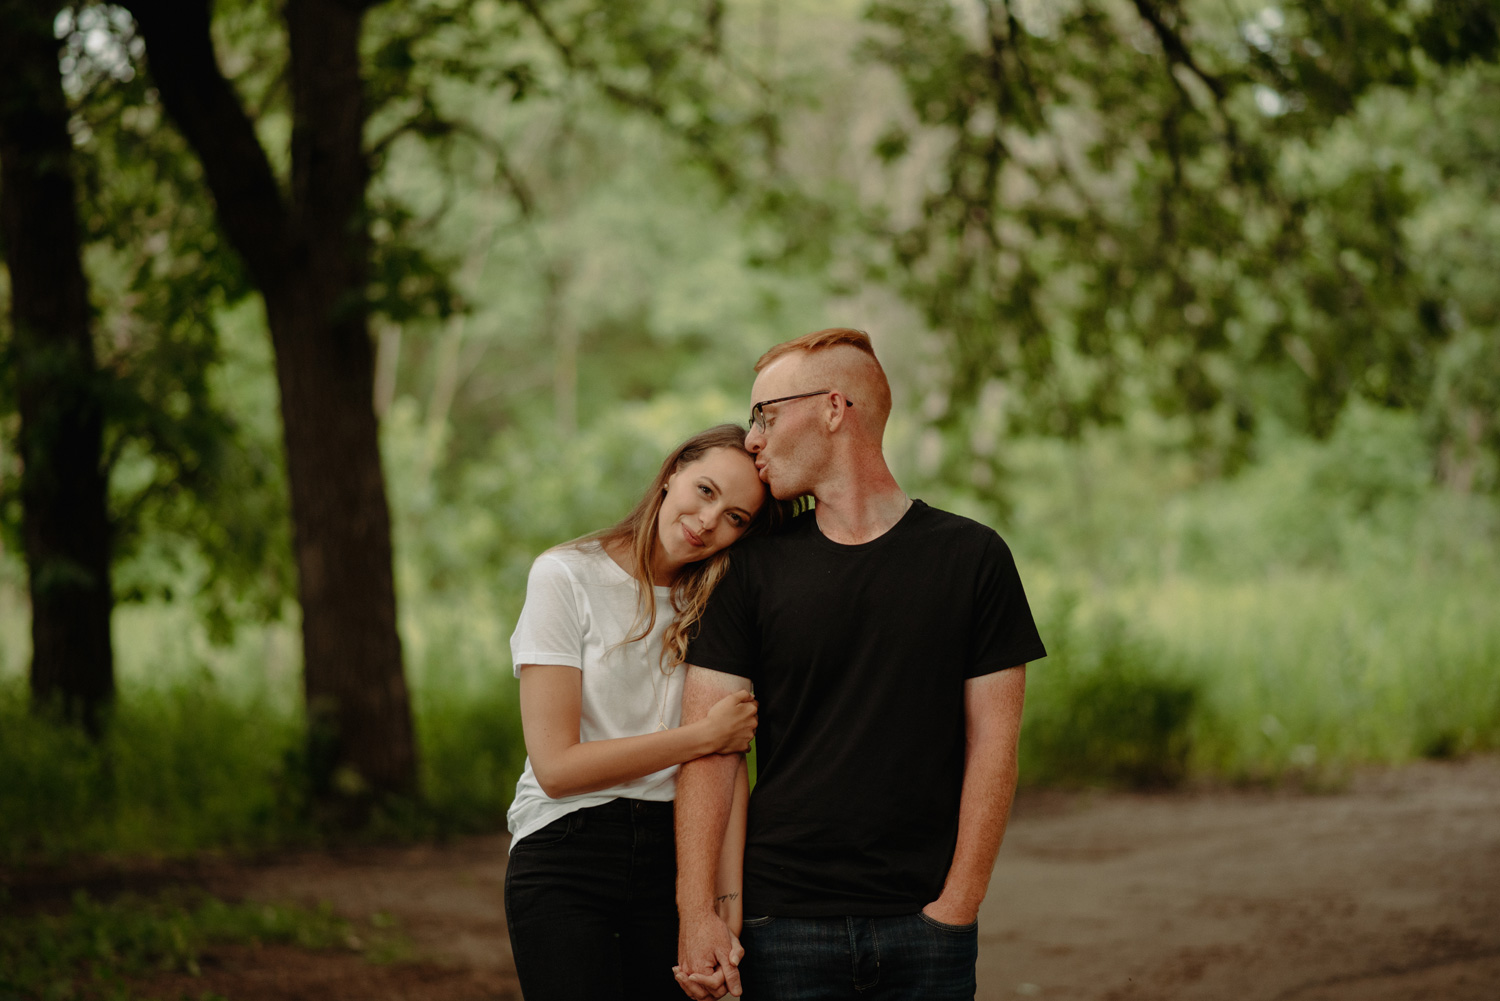 engaged couple walking on dirt path minnesota summer